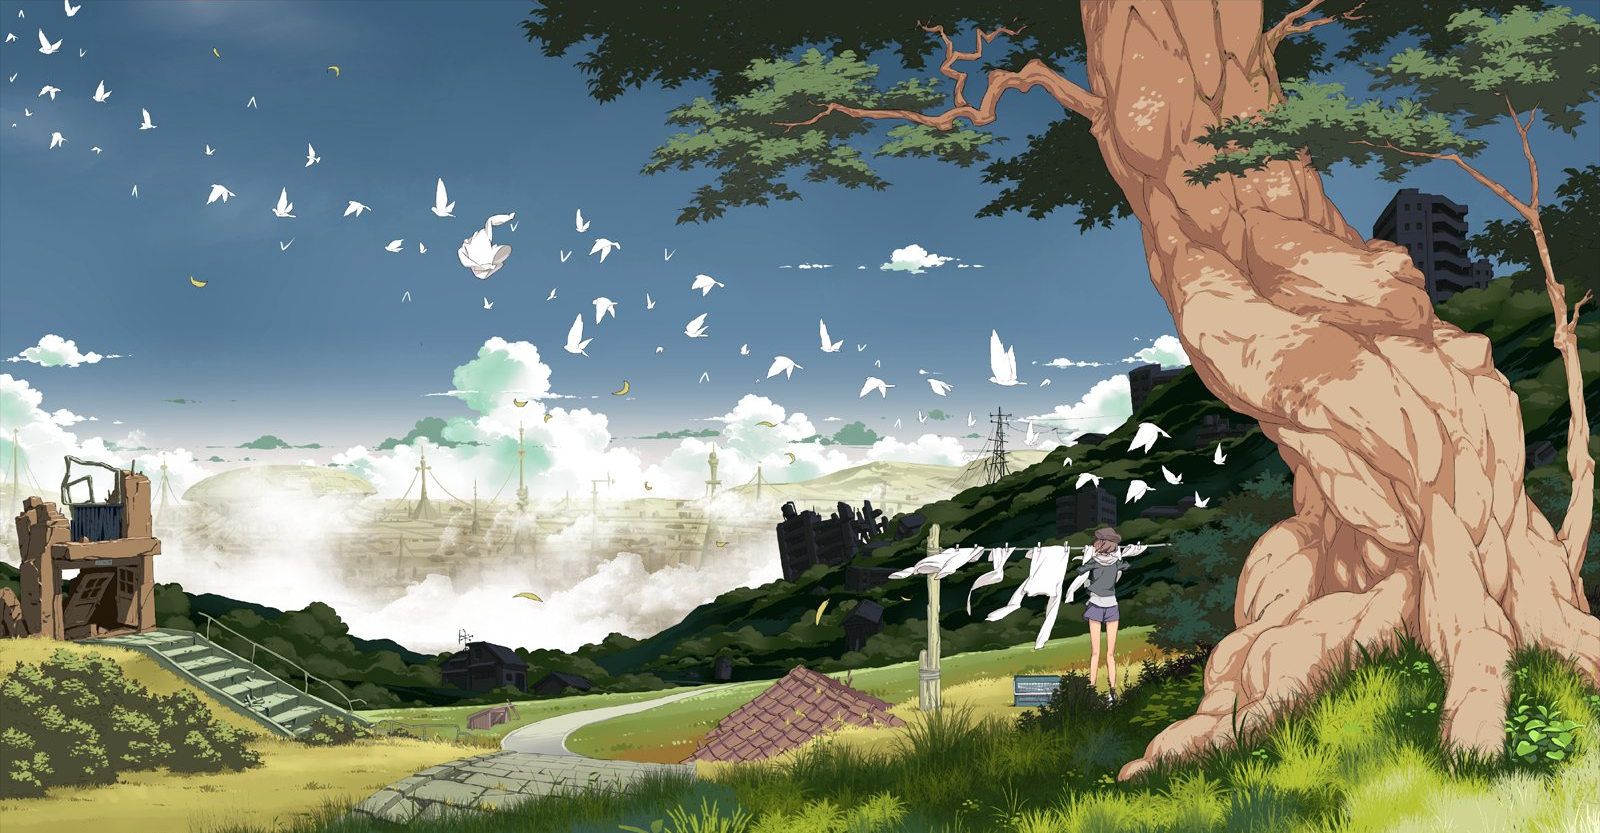 Anime girls Landscapes Trees HD Wallpaper